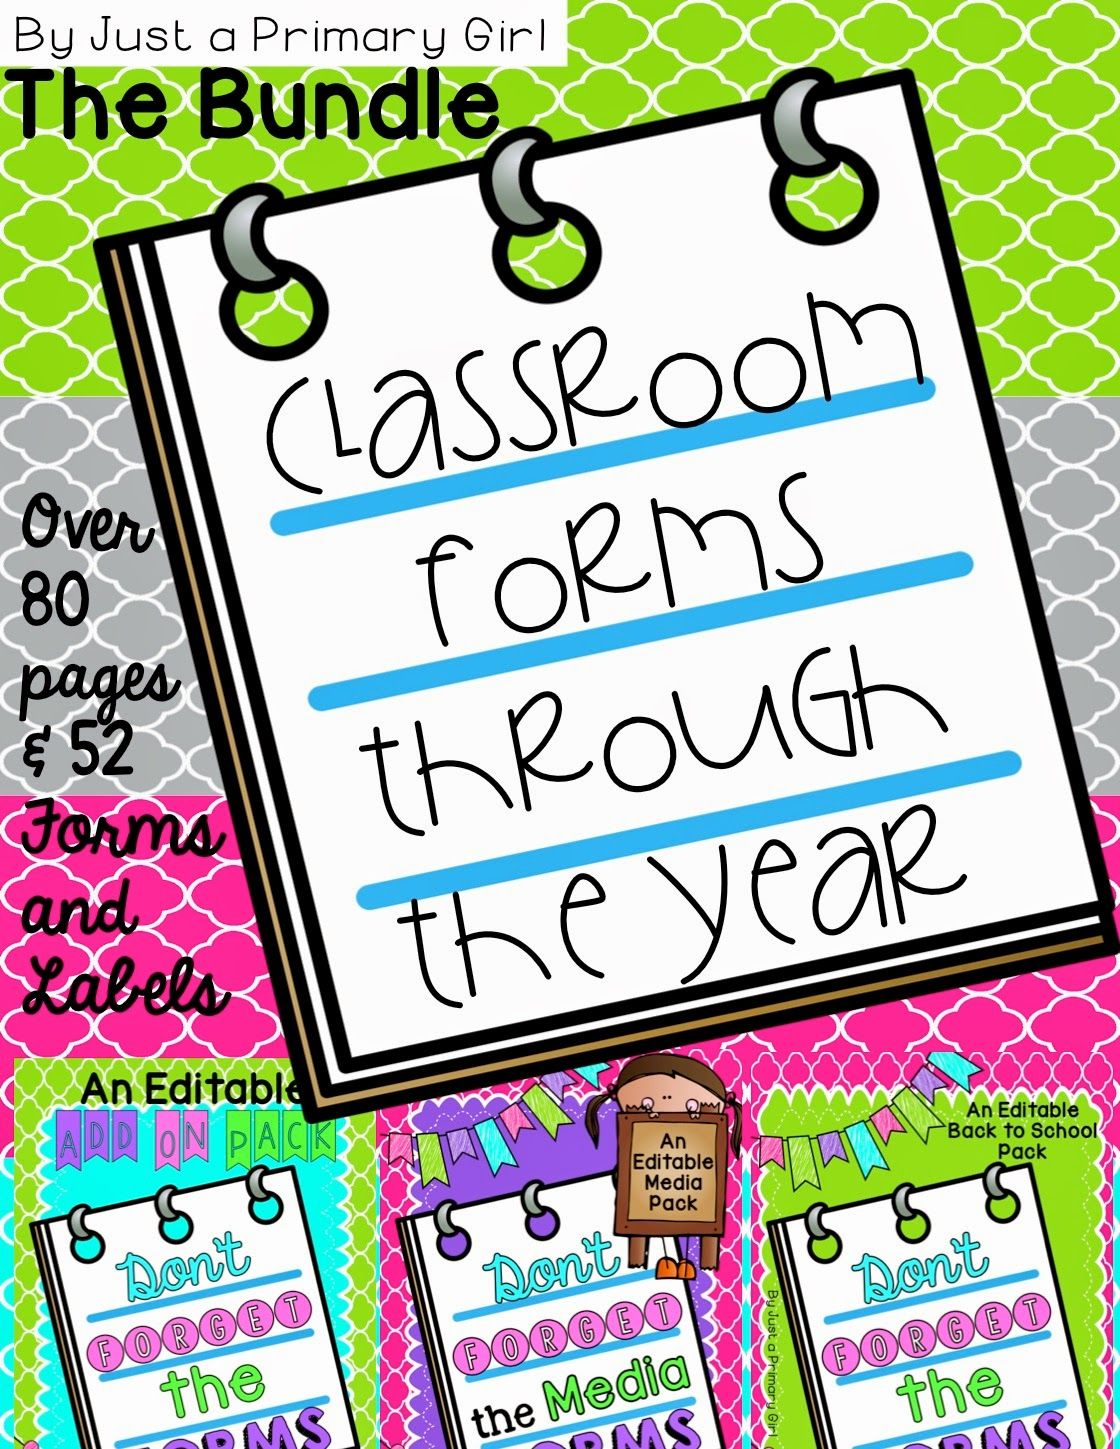 Classroom forms for the entire year!!! staying organized!